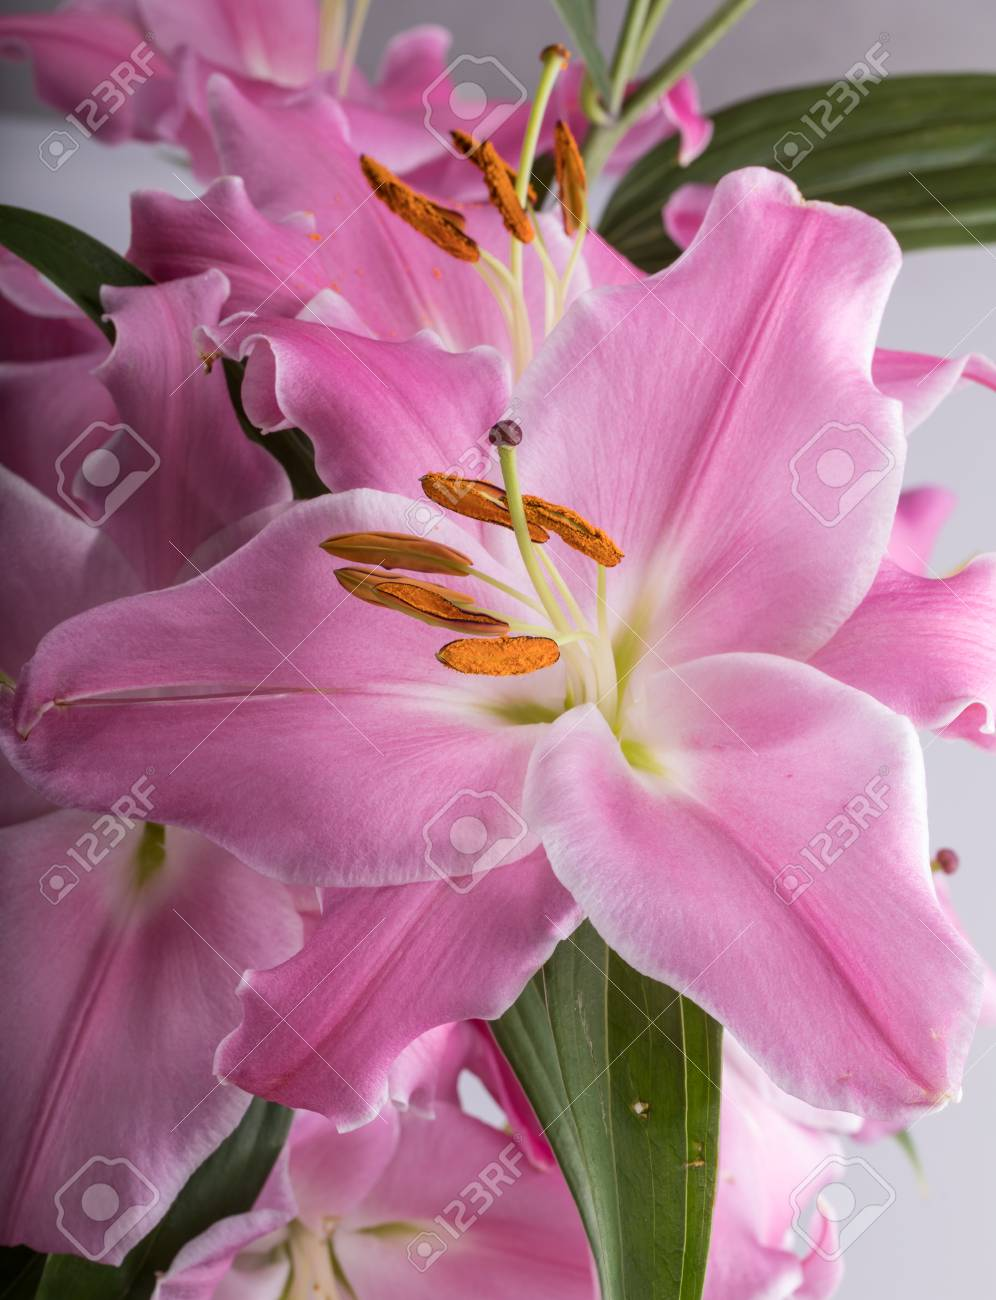 Close Up Of Pink Liles Flowers Common Names For Species In Stock